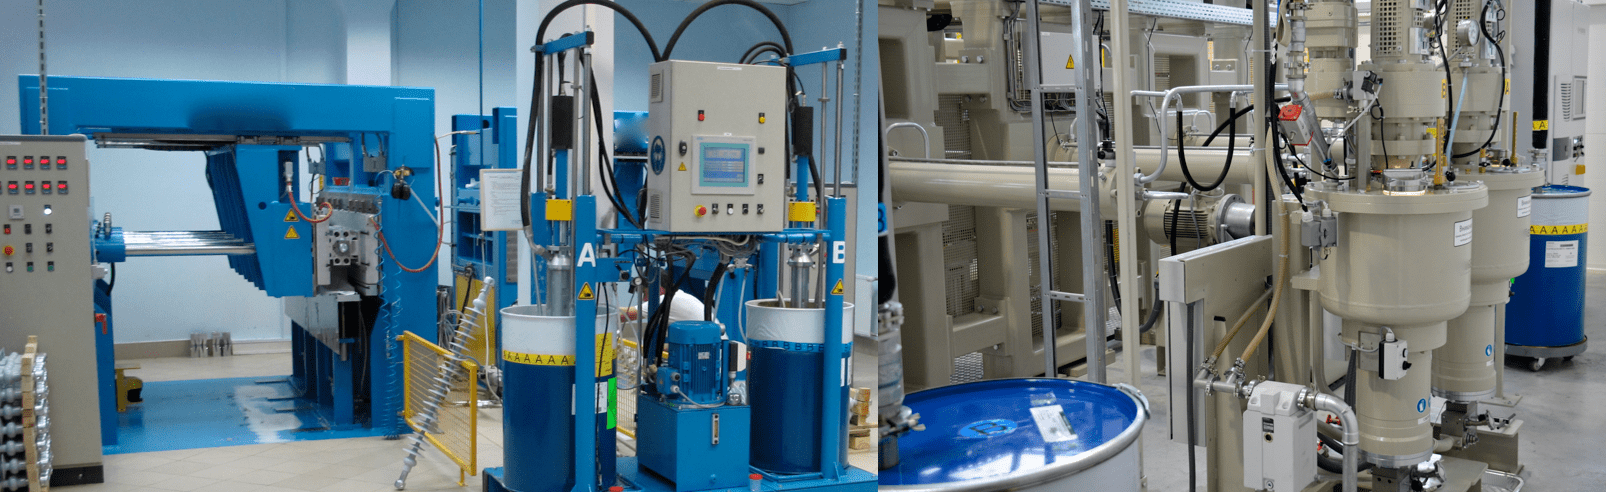 [object object] Chemistry & Properties of Silicones Drums of LSR two component materials supply insulator molding machine